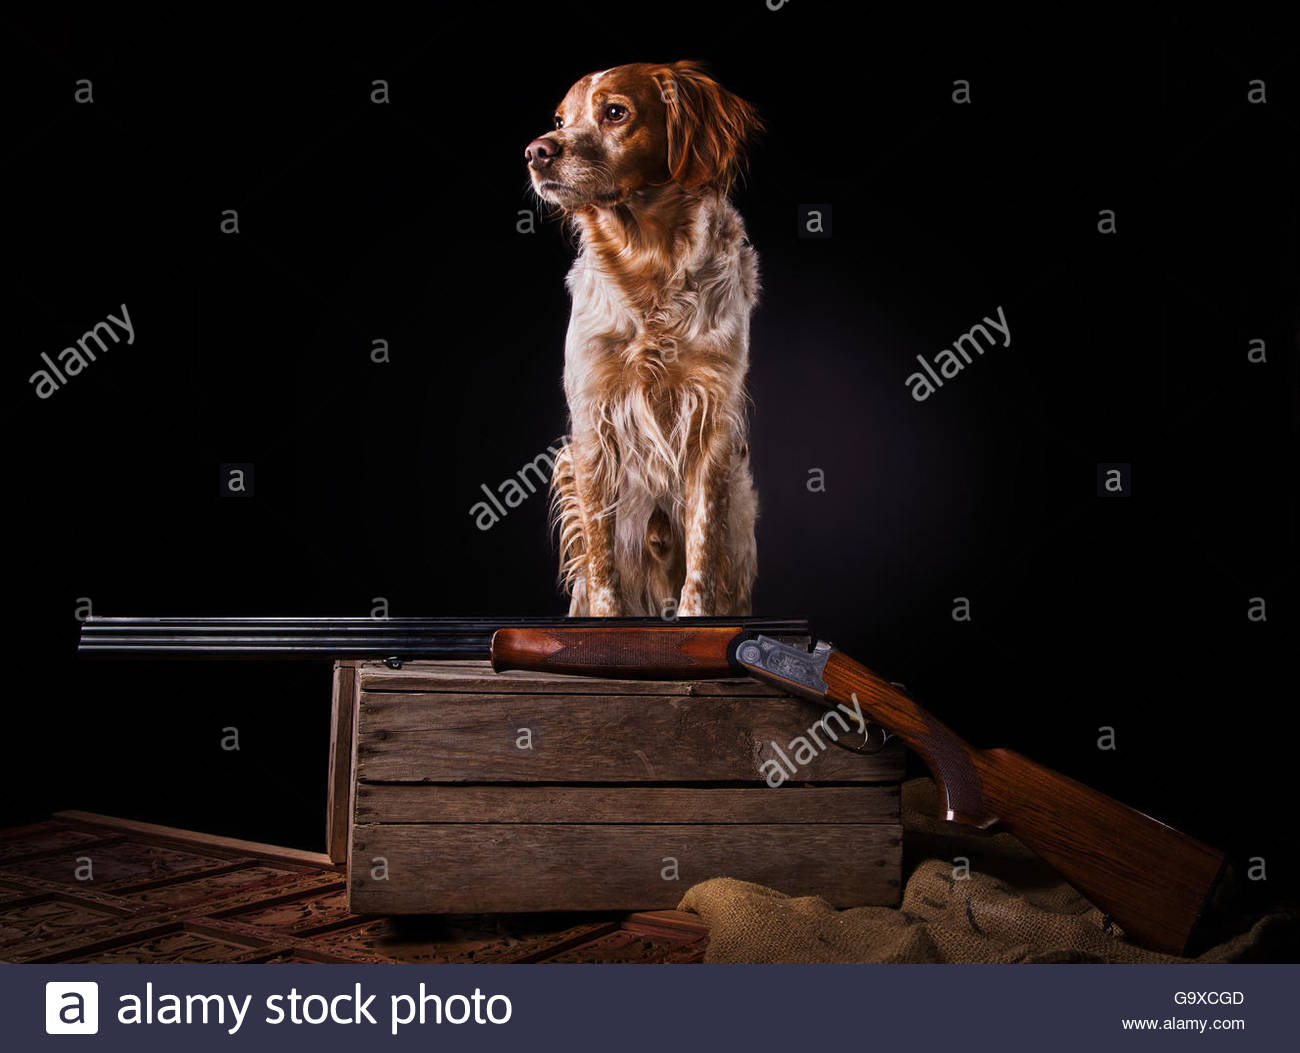 Studioshot from Epagneul Breton dog on wooden box with gun - Stock Image